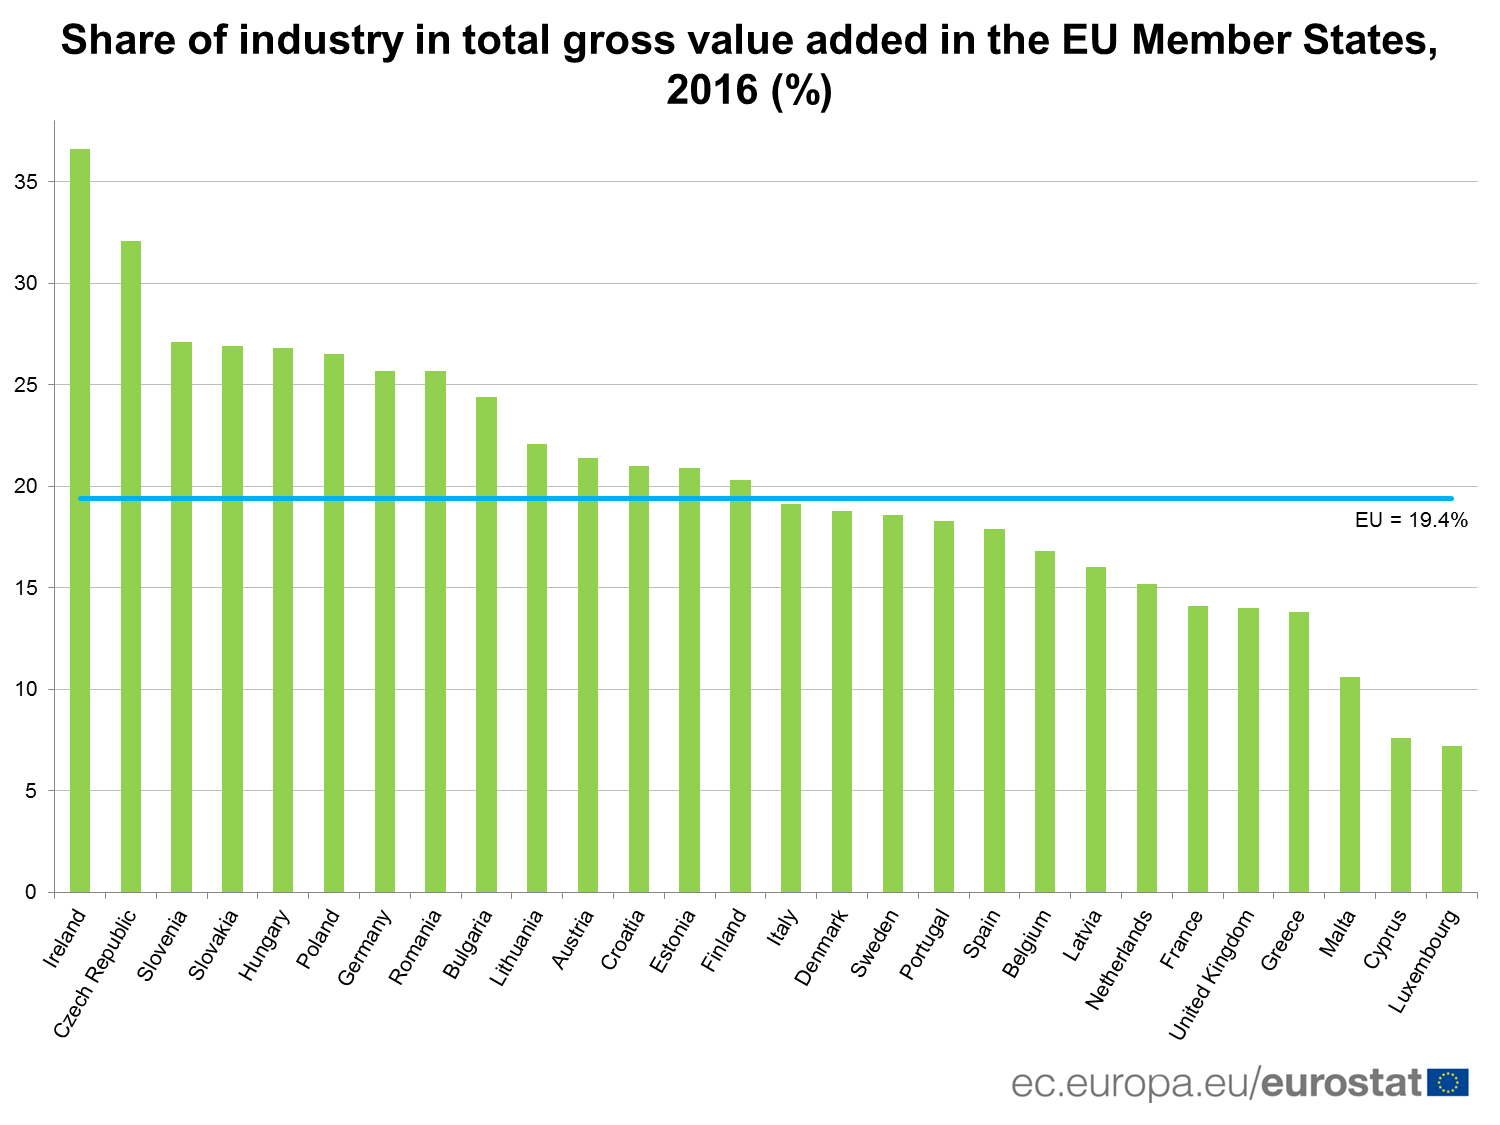 Share of industry in total gross value added in the EU Member States. 2016 (%)